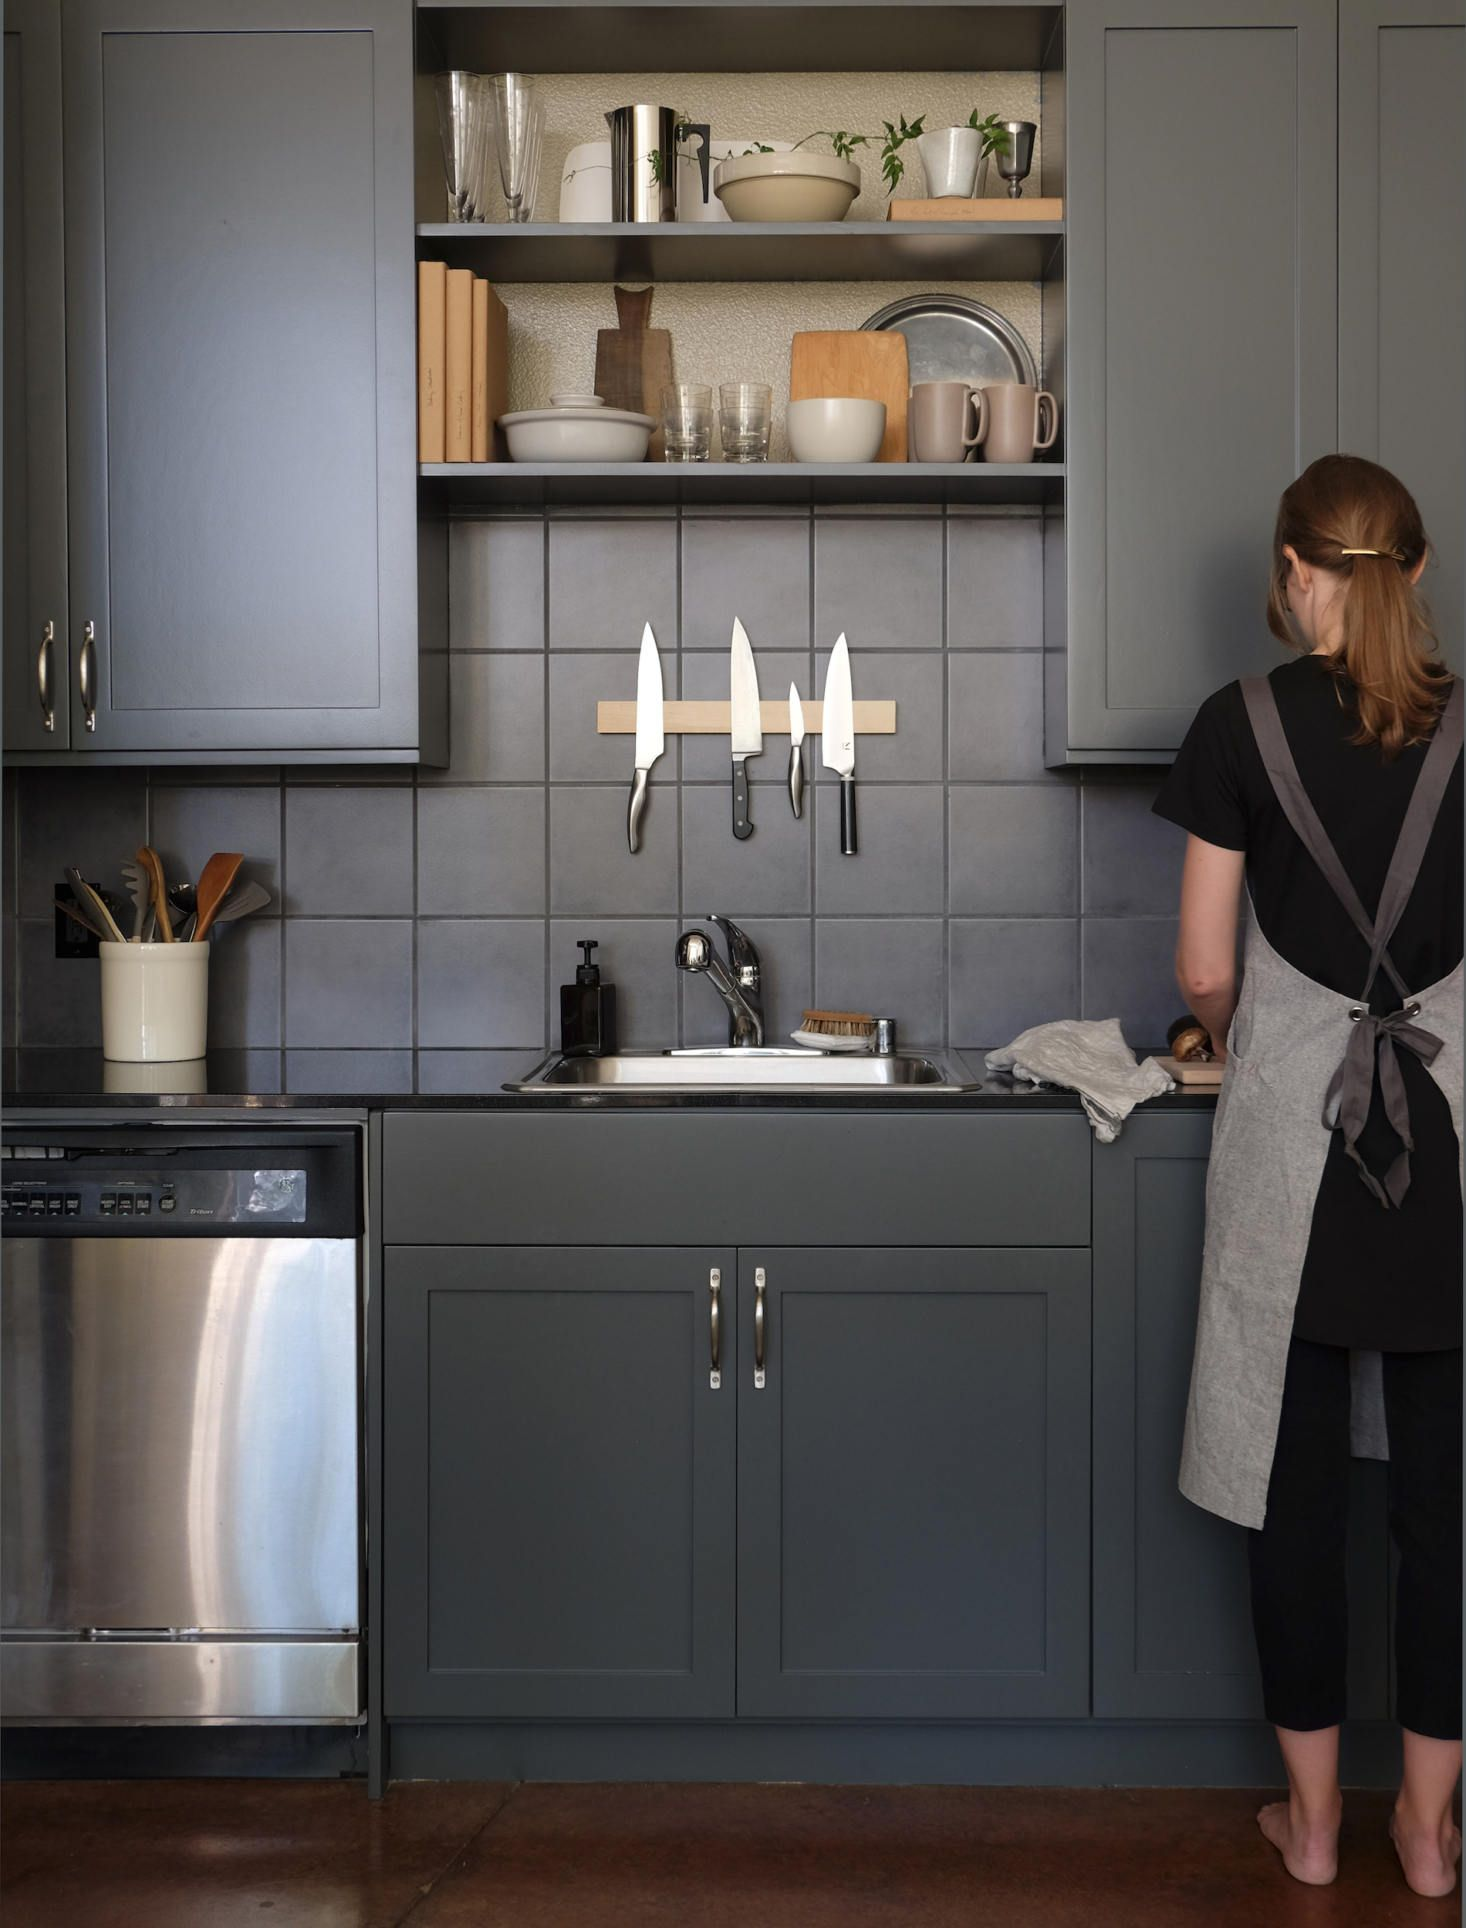 Before After A Remodelista Editor S Dated California Kitchen Gets A Refresh With Images Black Kitchens Kitchen Kitchen Interior